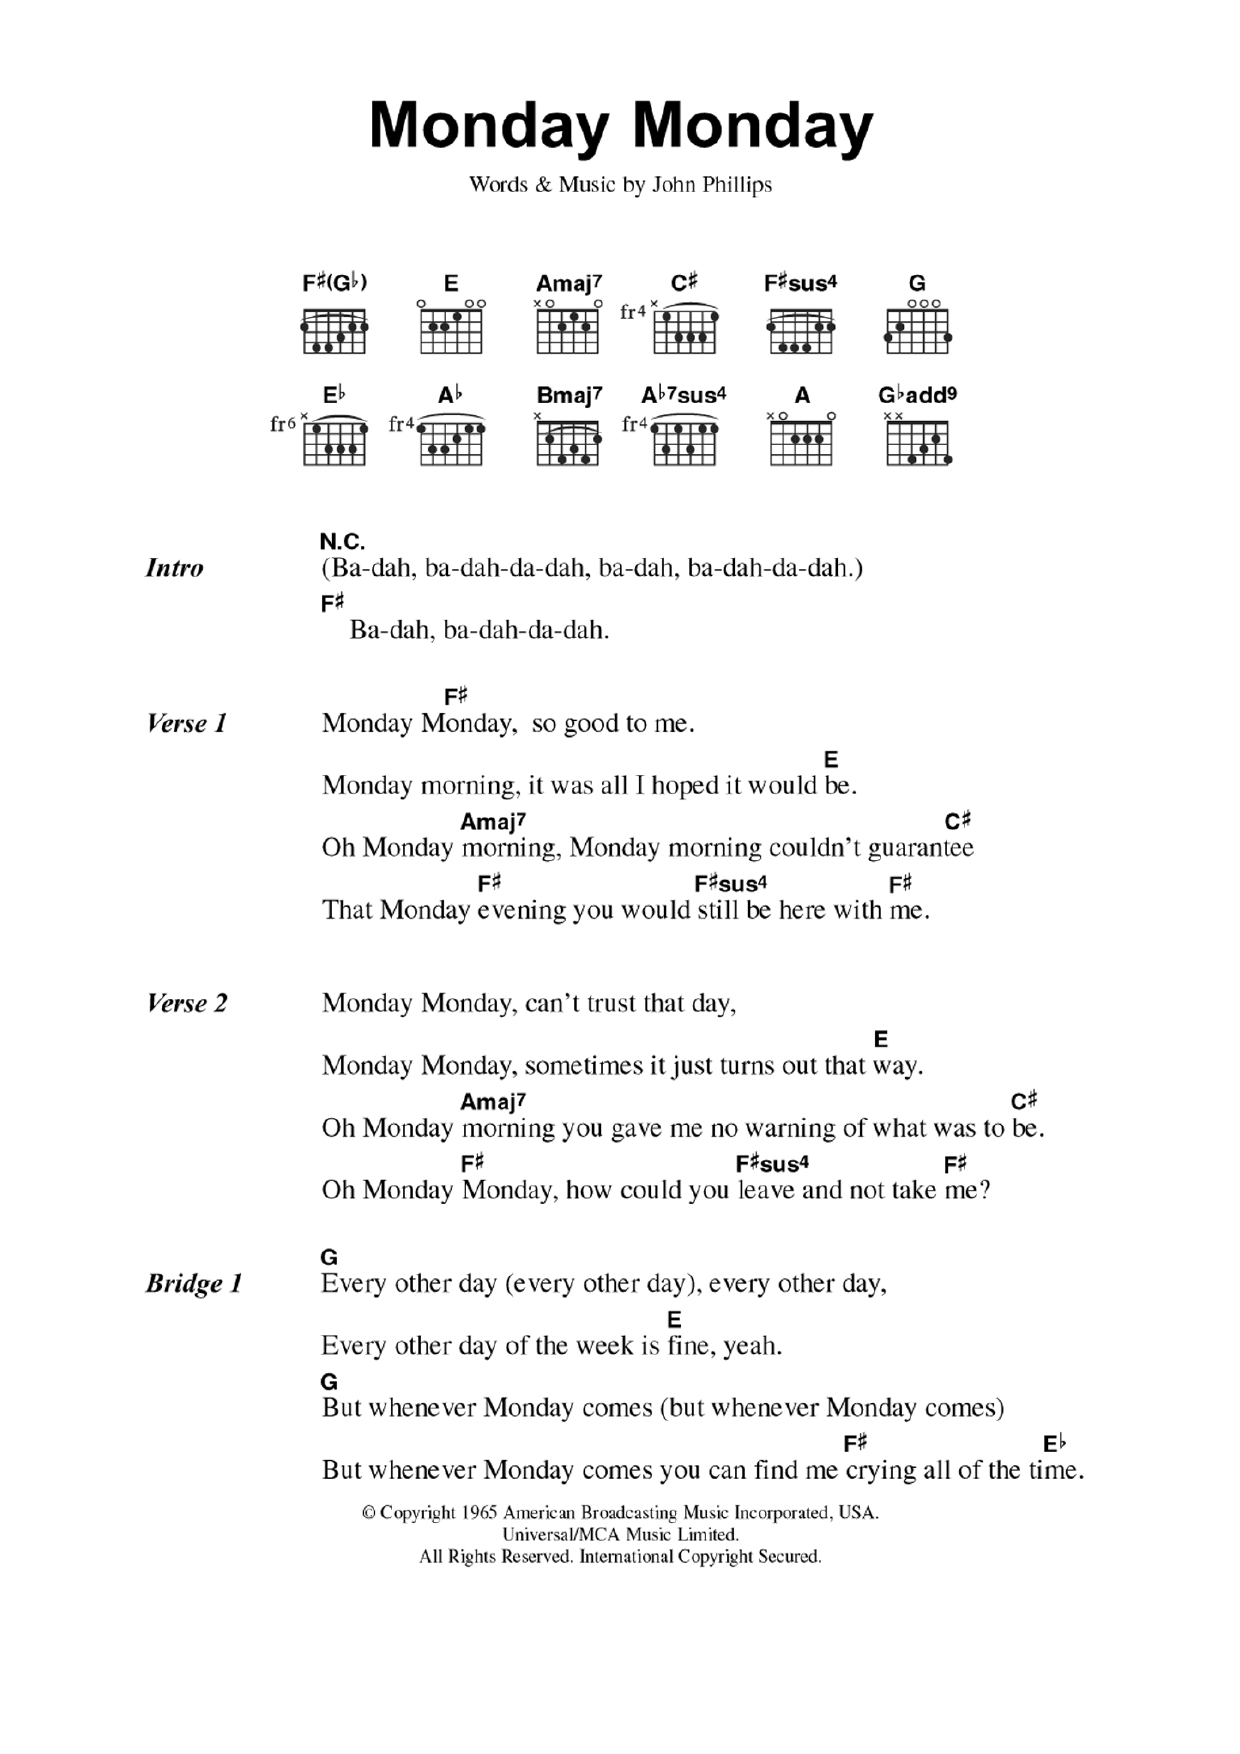 Monday Monday Sheet Music